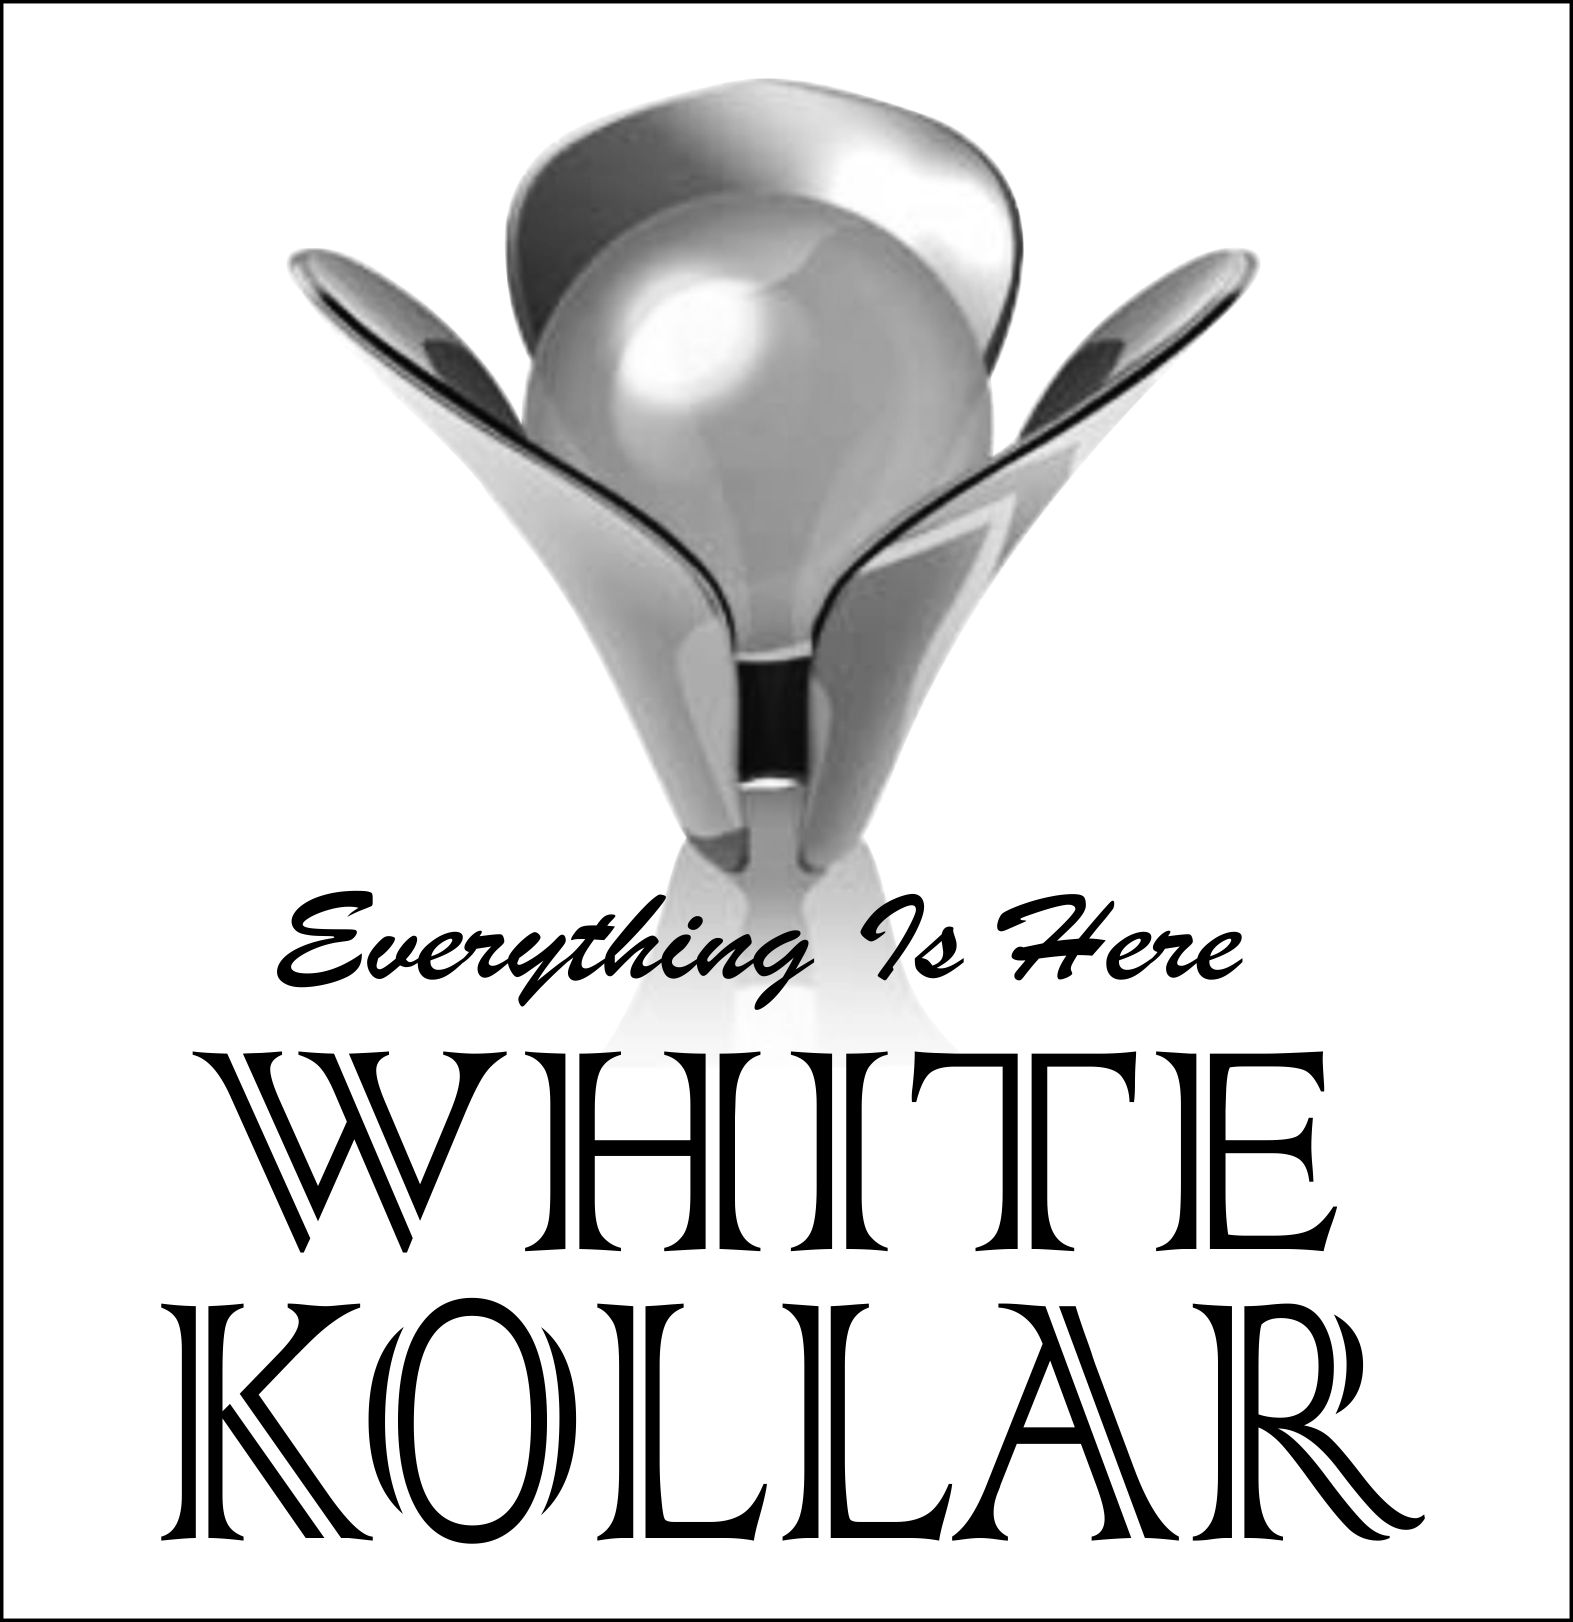 White Kollar Group